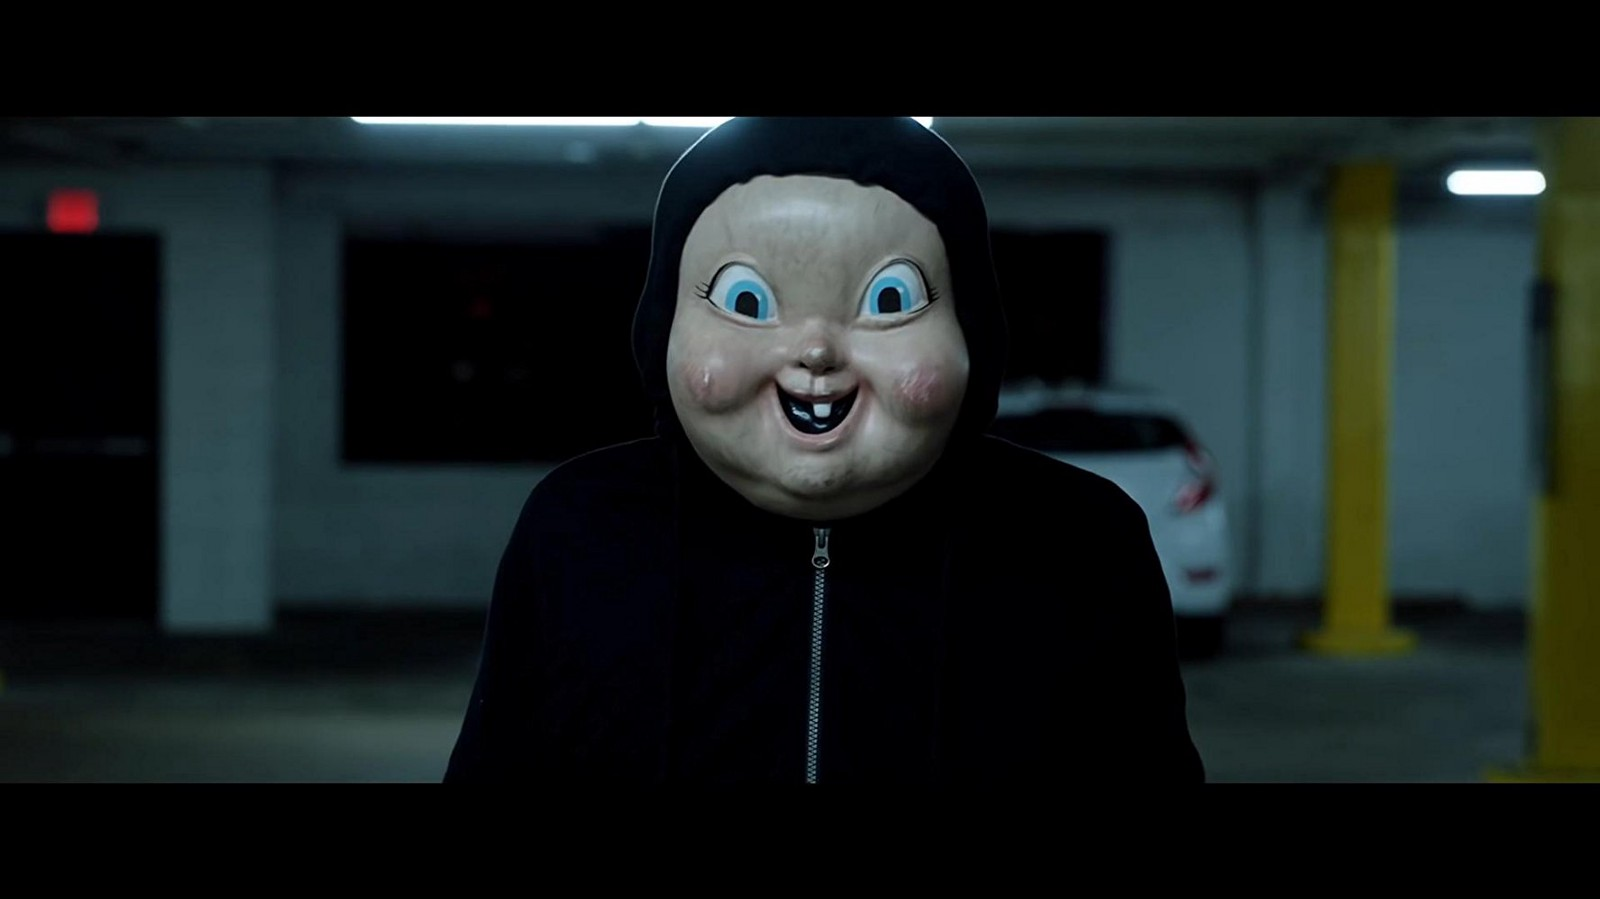 Happy death days villain was obvious isaac biehl medium why couldnt tree figure it out sooner universal pictures blumhouses happy death day stopboris Image collections